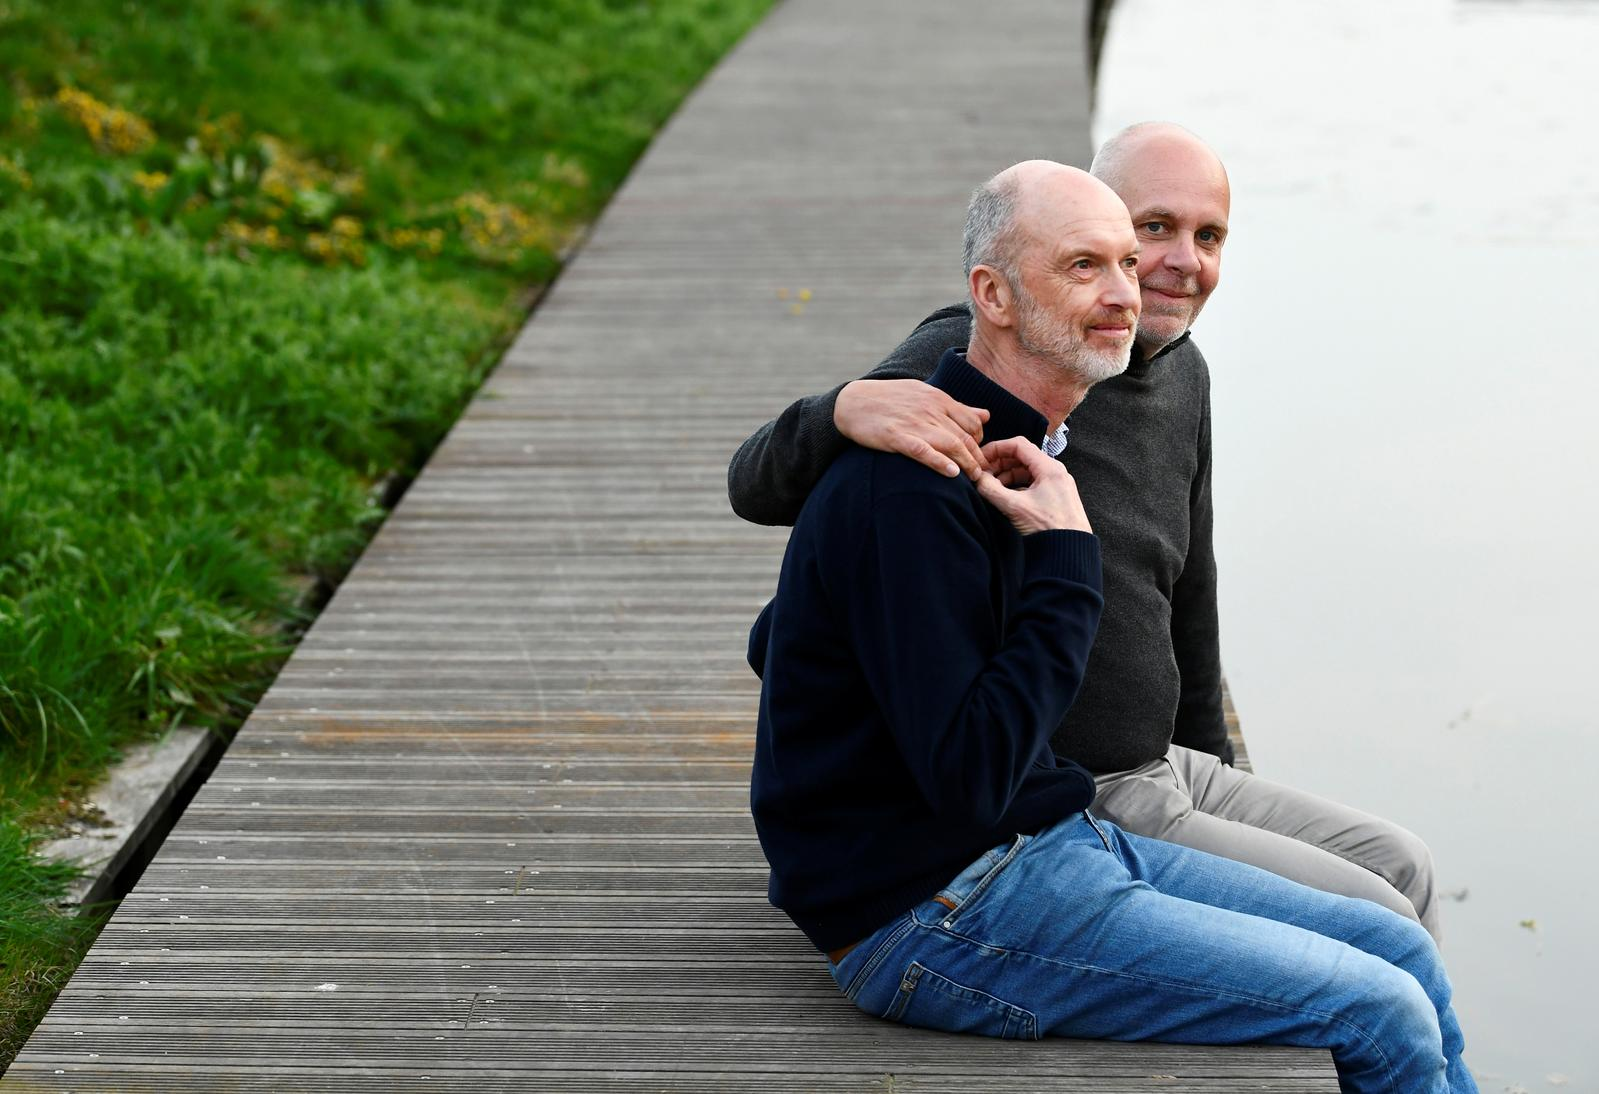 Dutch couples mark 20th anniversary of world's first same-sex marriages